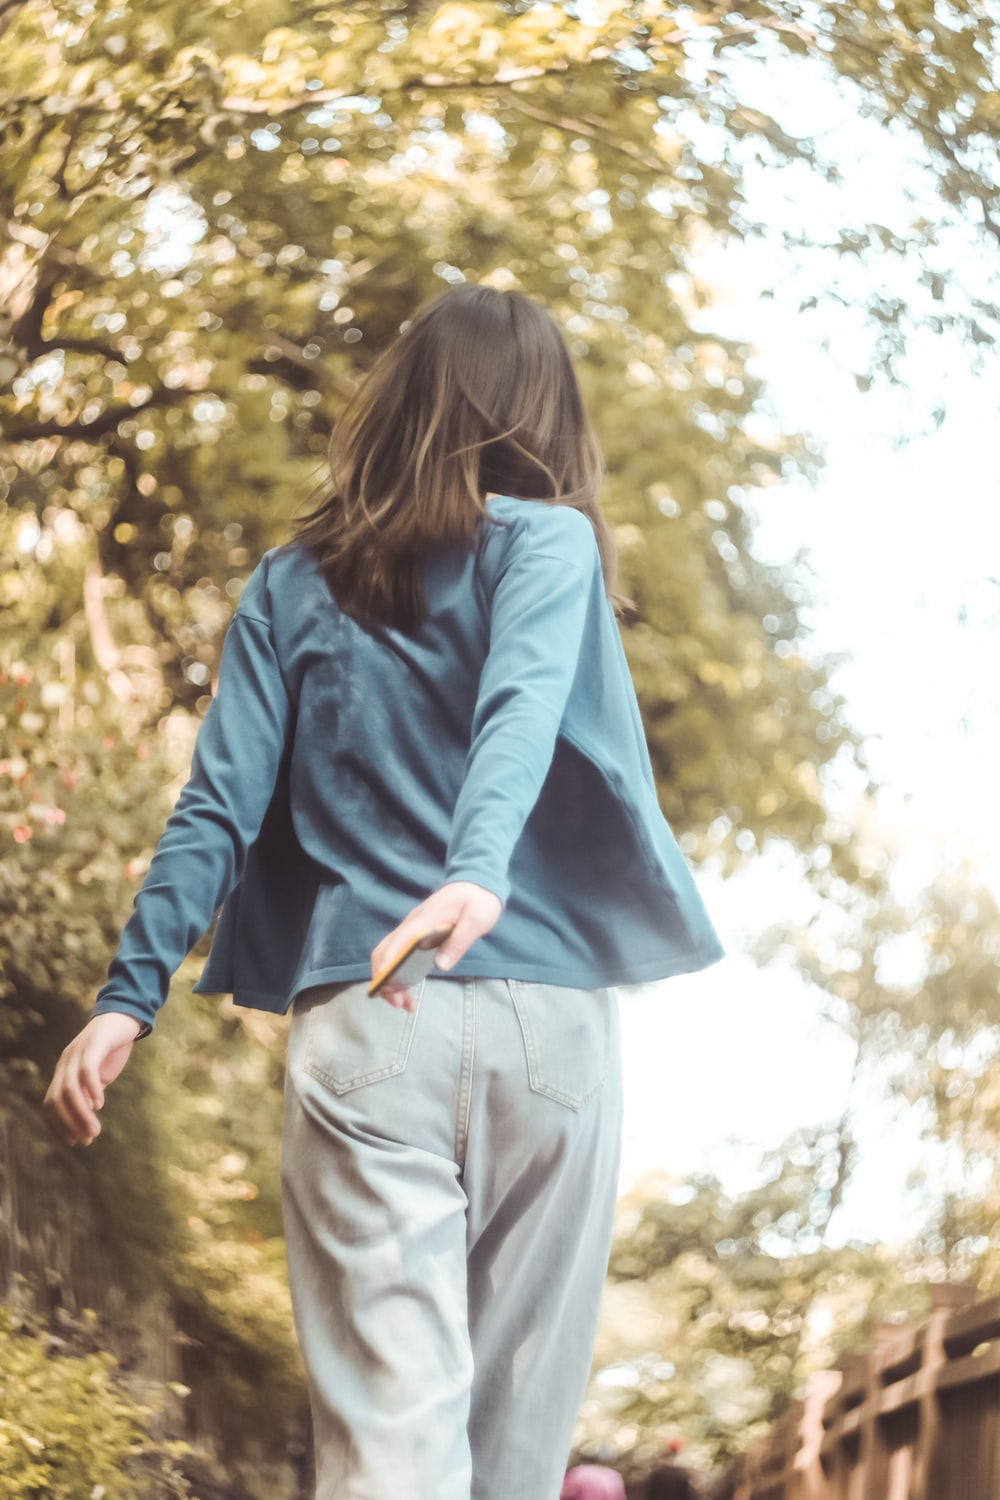 woman in blue long sleeve shirt and gray denim jeans standing on brown rock during daytime